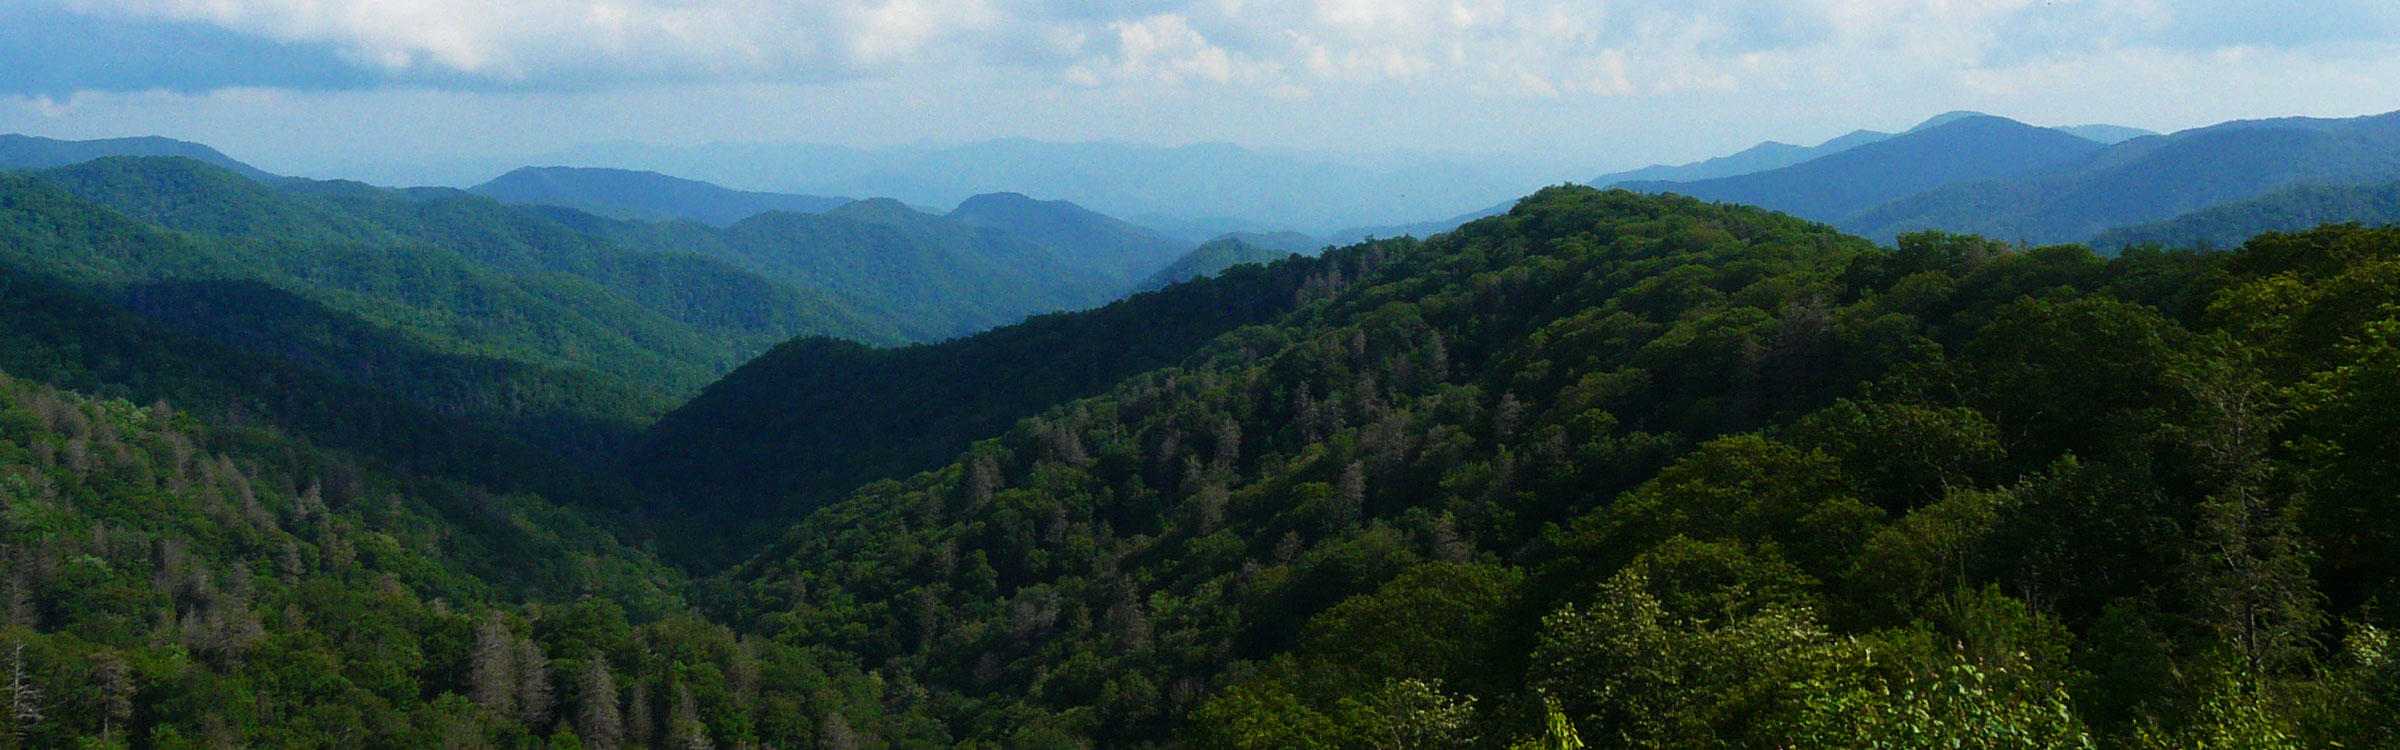 Blue Ridge Mountains_akshay_flickr_CC